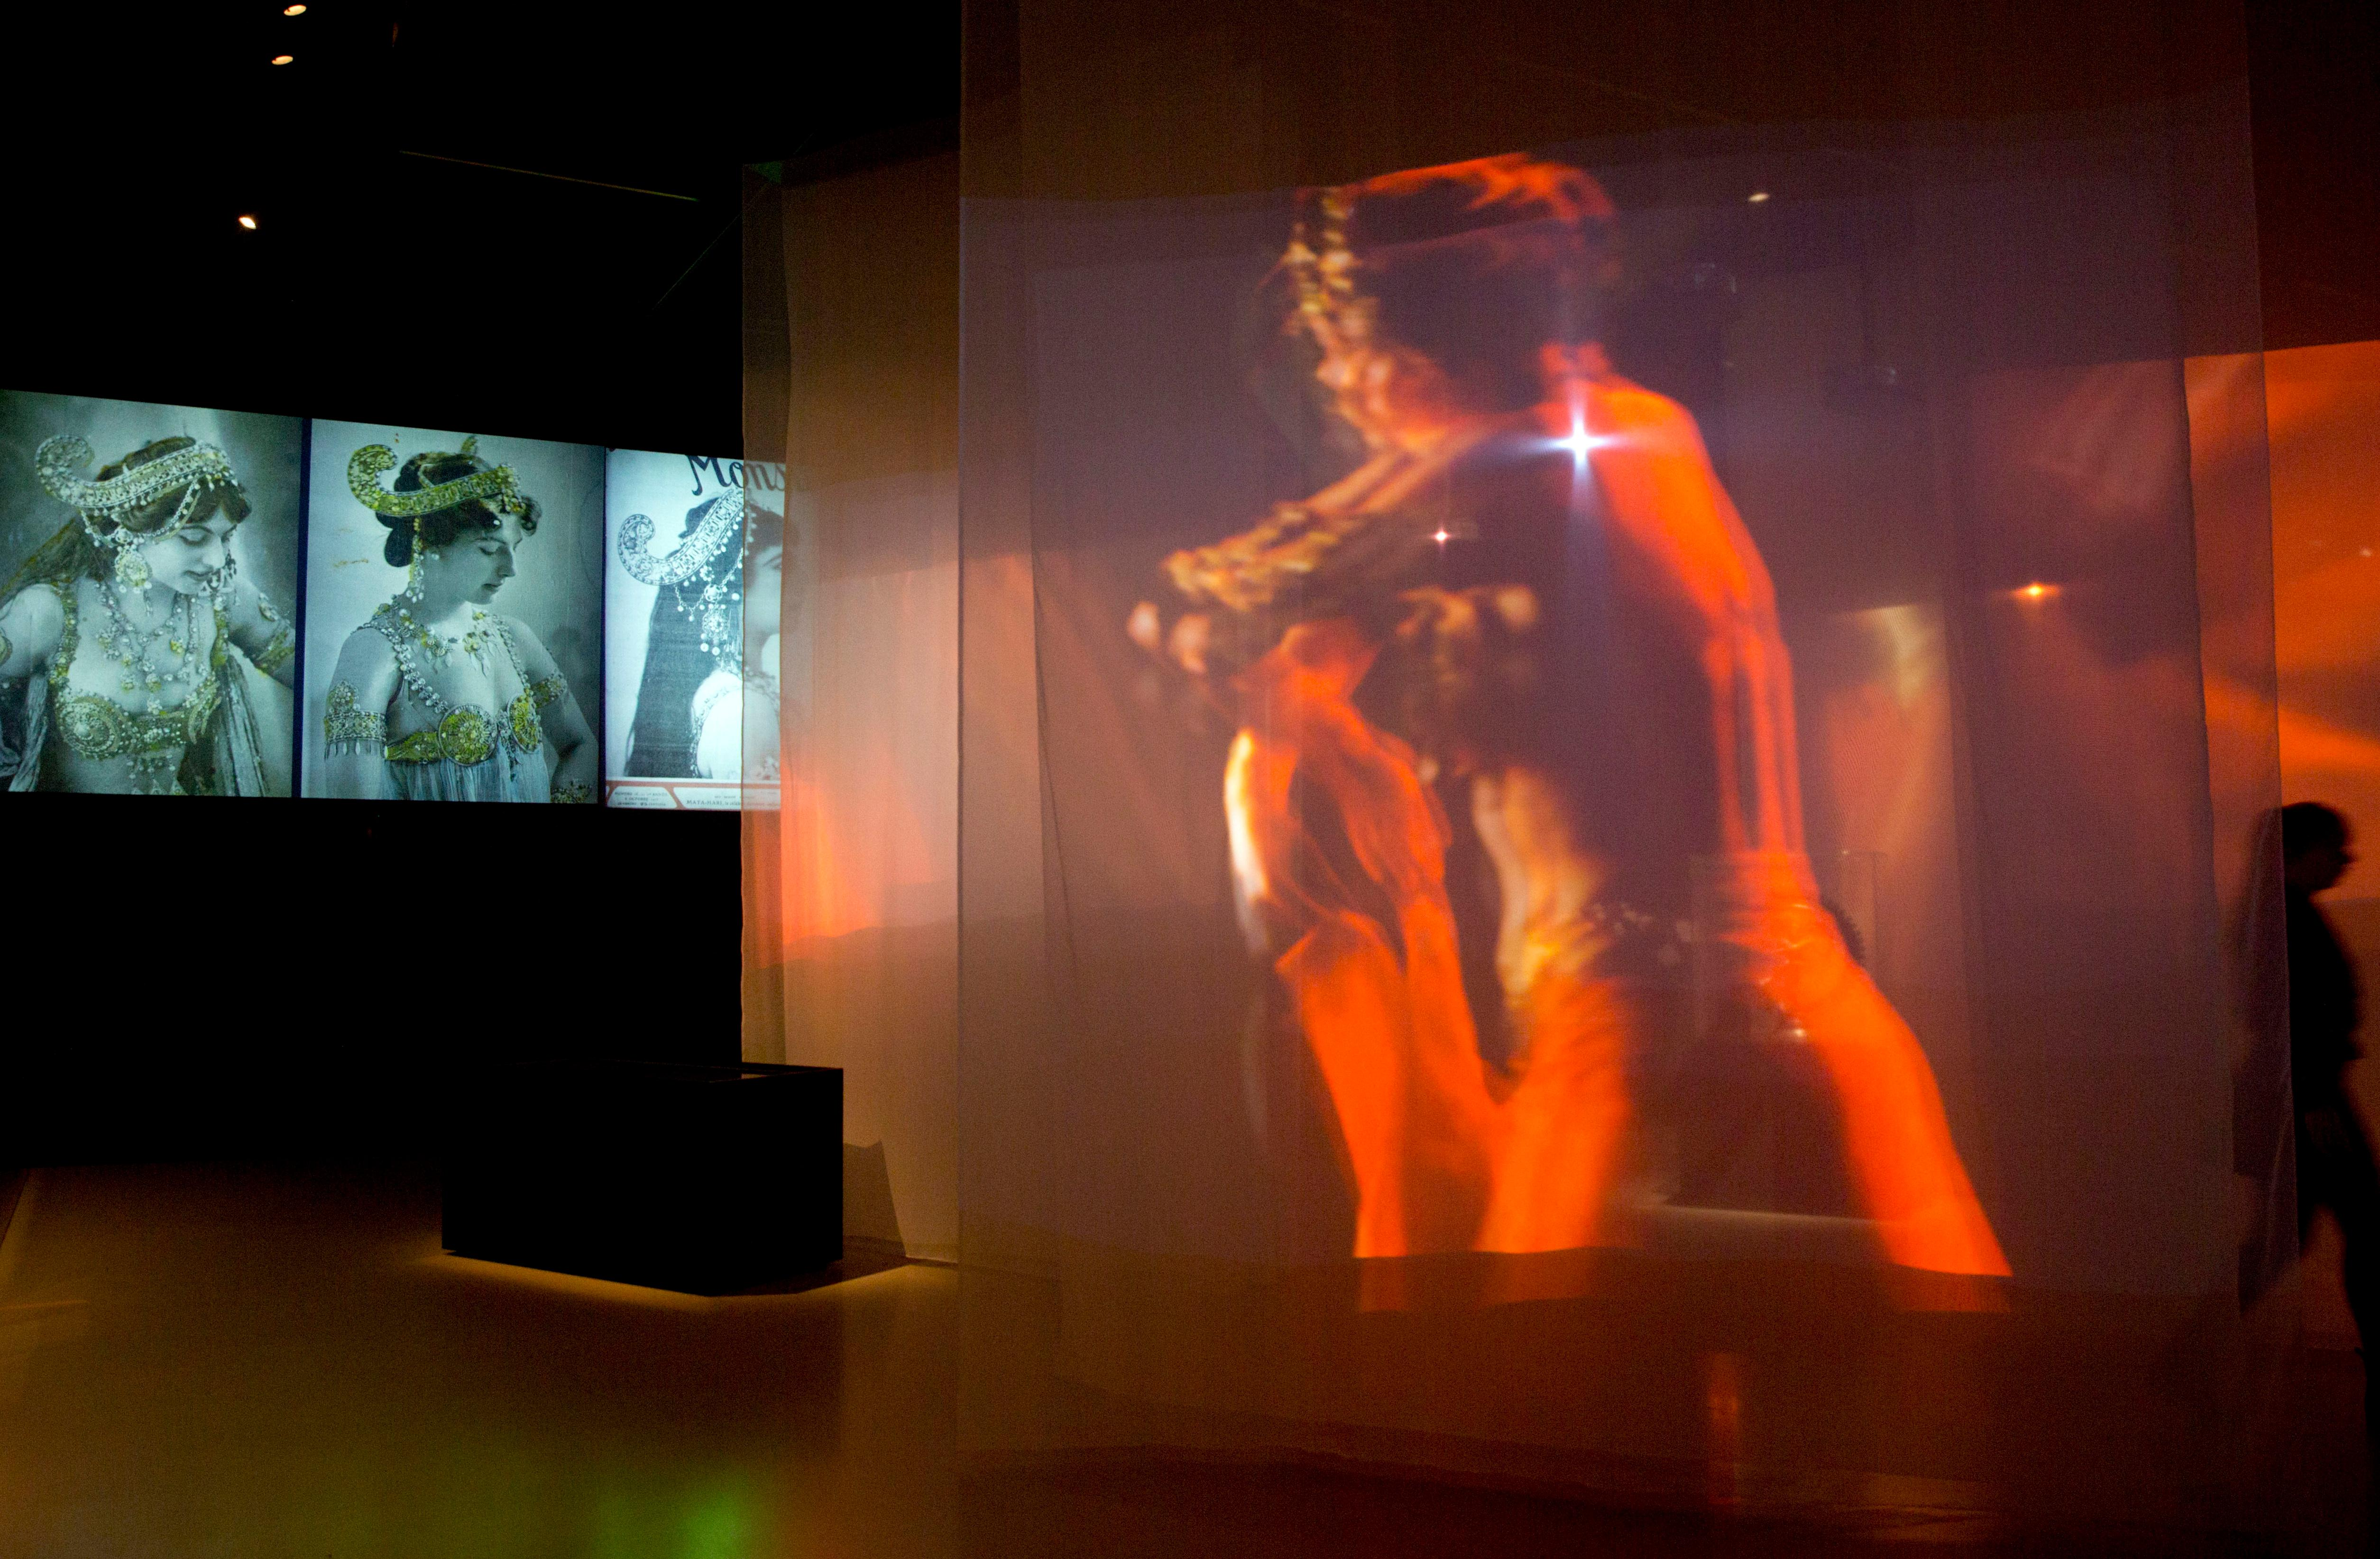 In this photo taken on Friday, Oct. 13, 2017, a visitor walks through a projection and photos of Margaretha Zelle, also known as Mata Hari, at the Fries Museum in Leeuwarden, Netherlands. A century ago, on Oct. 15, 1917, an exotic dancer named Mata Hari was executed by a French firing squad, condemned as a sultry Dutch double agent who supposedly led tens of thousands of soldiers to their death during World War I. (AP Photo/Virginia Mayo)